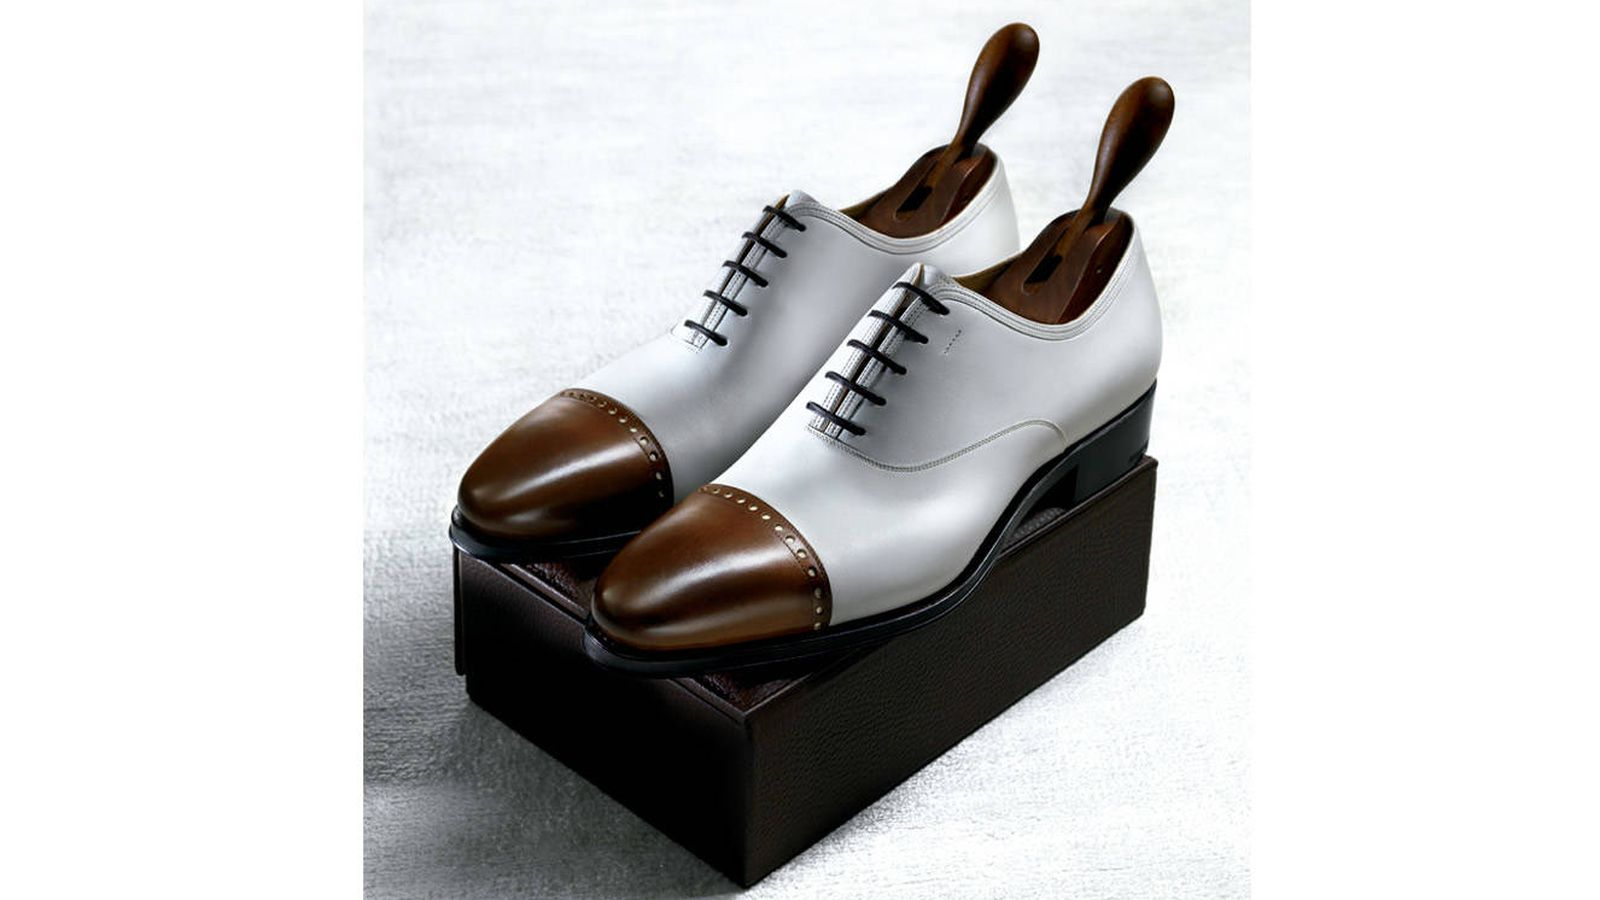 a1333bd05 Moda hombre: Siete zapatos para un gentleman: de Crockett & Jones a Louis  Vuitton